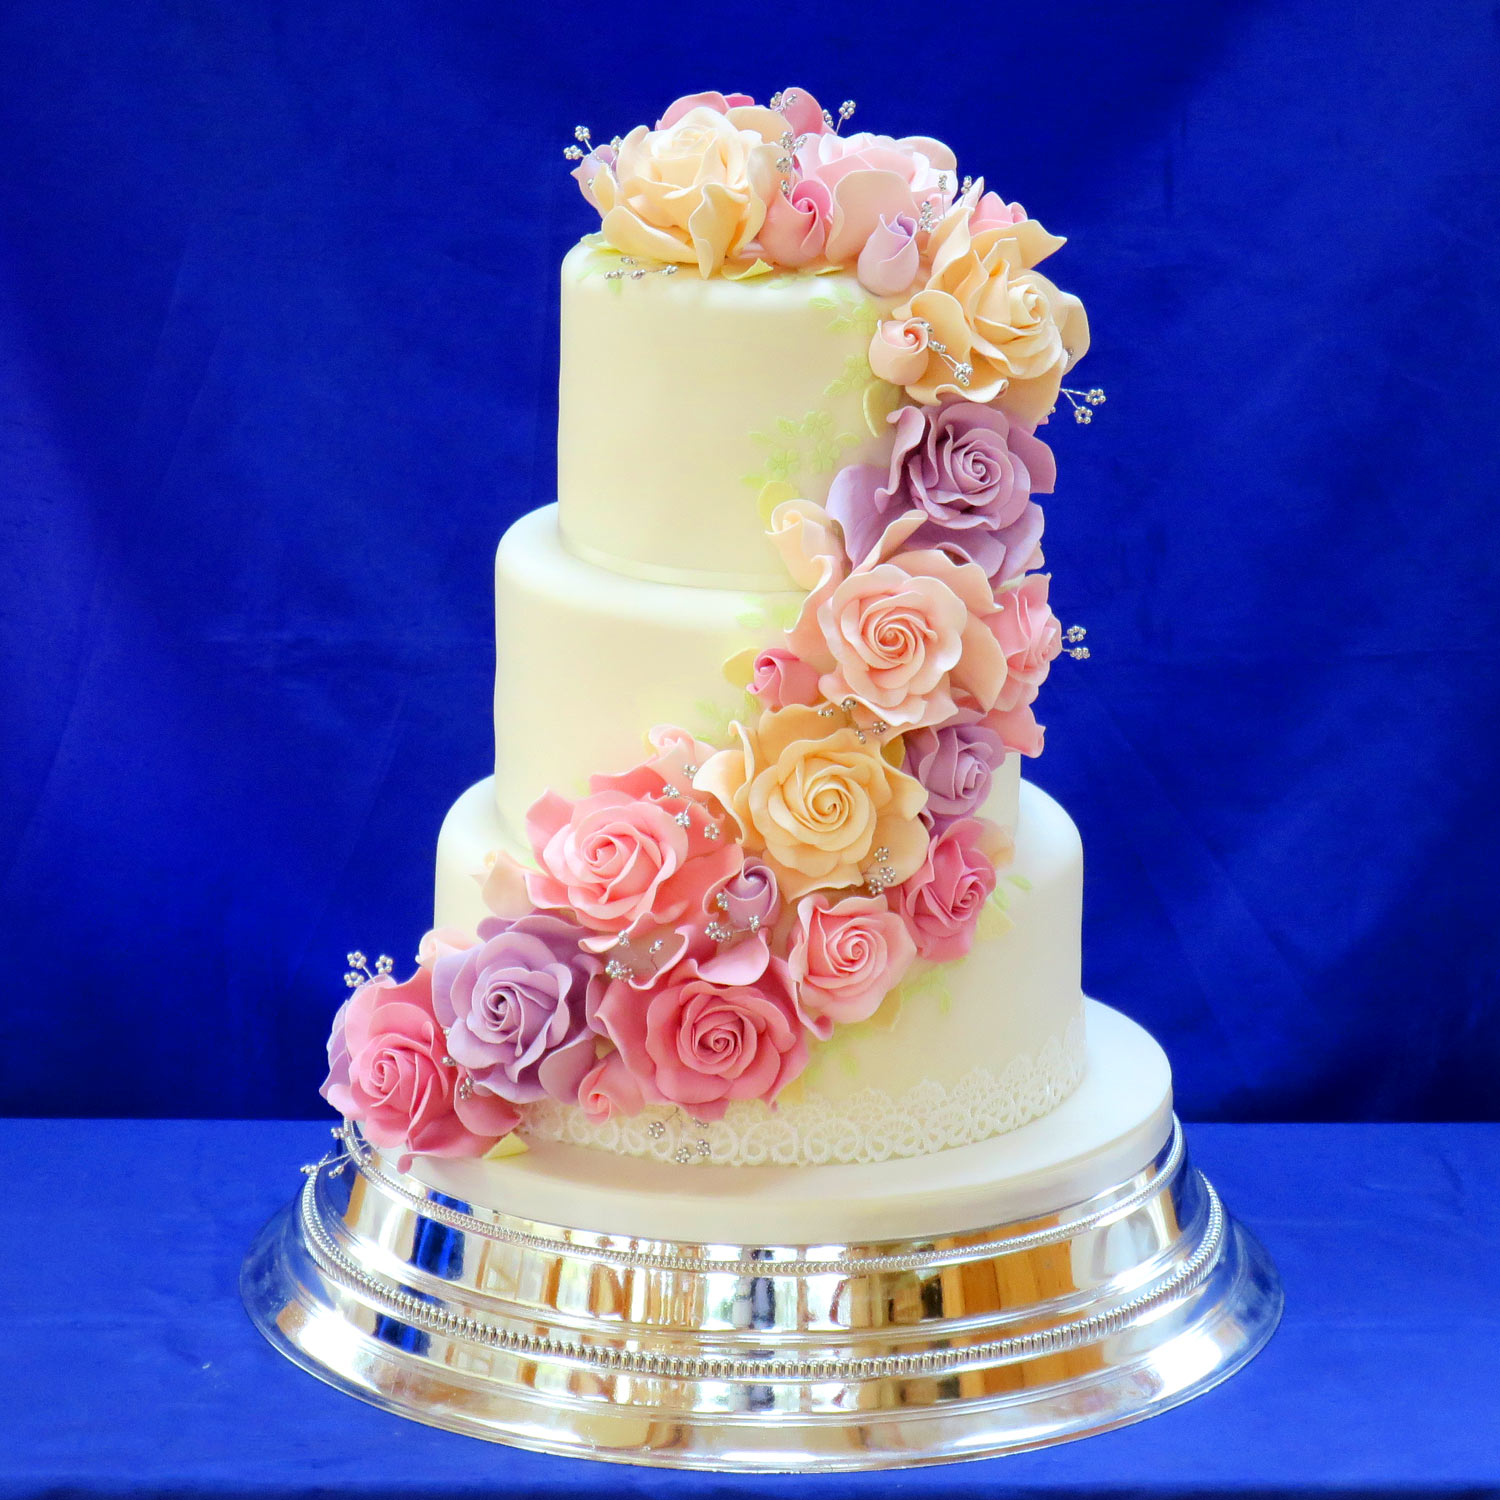 Wedding Cake decorated with hand made sugar roses.